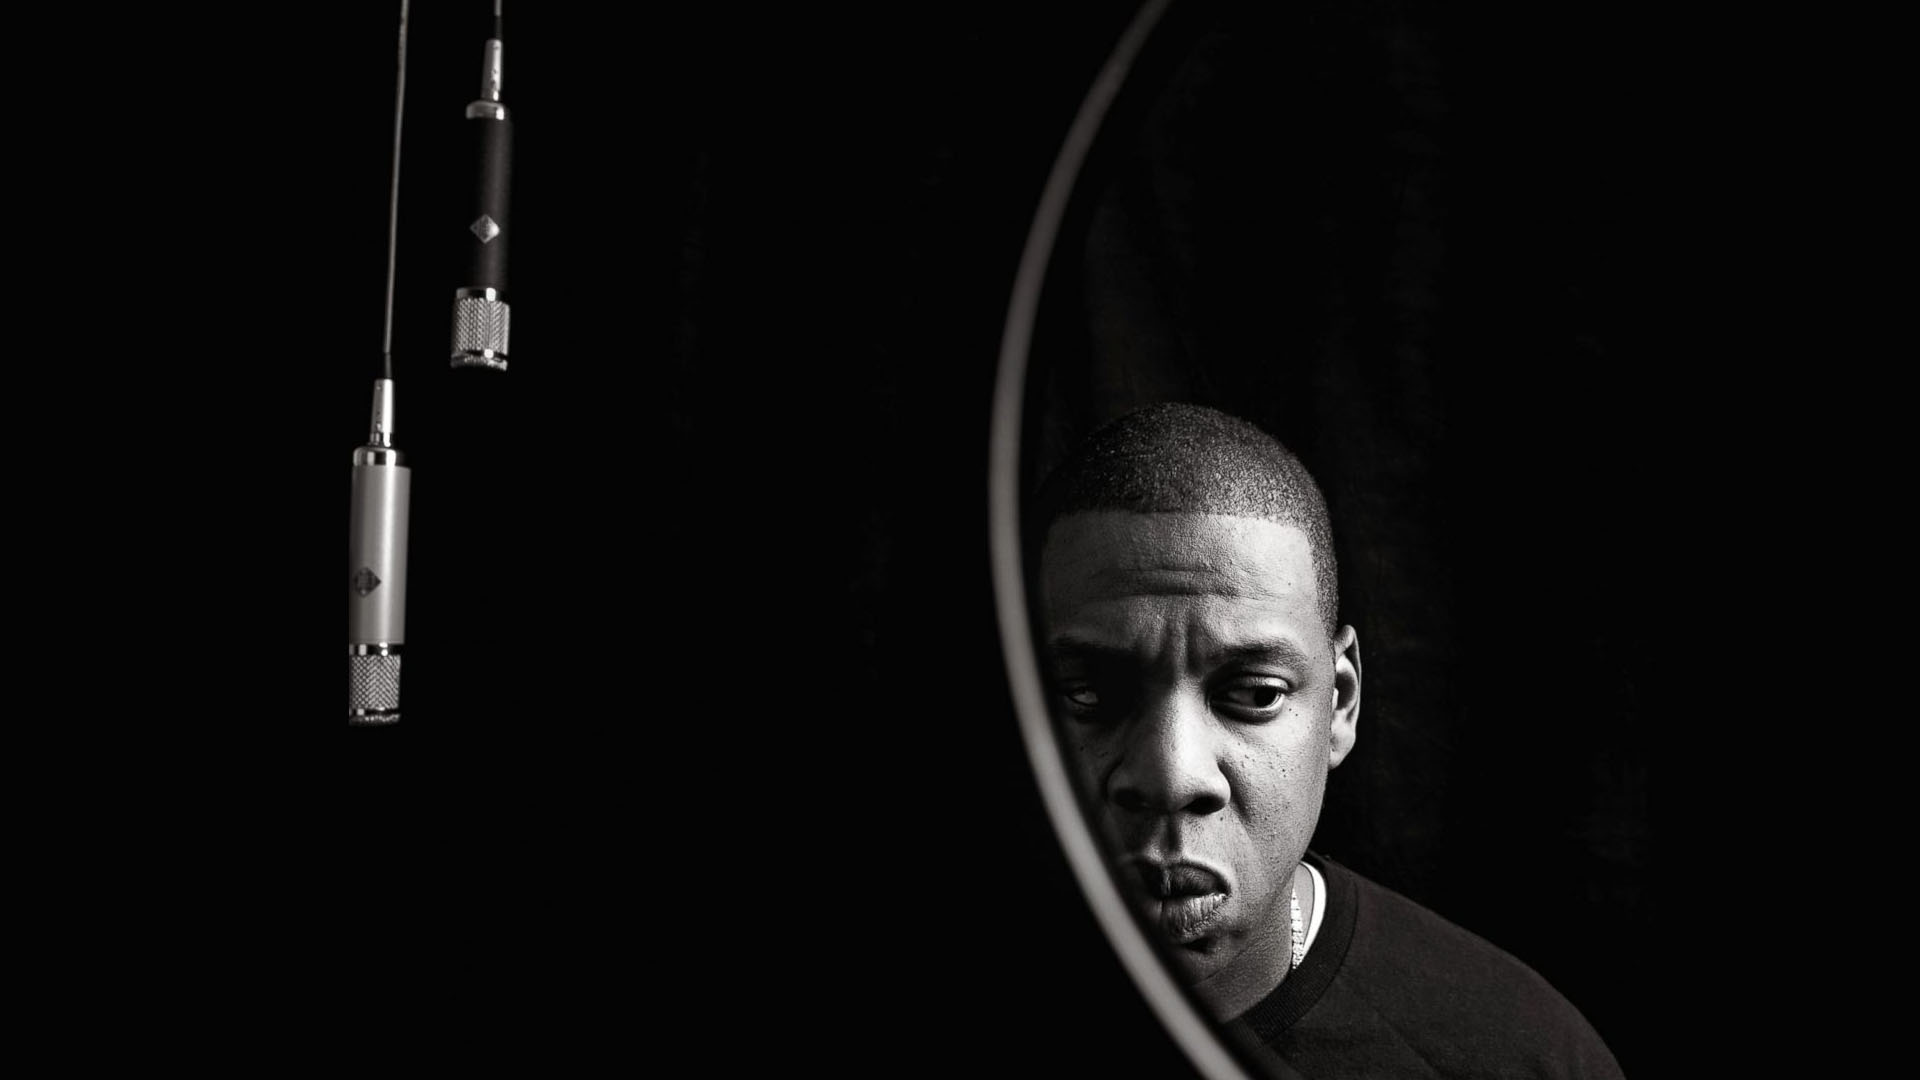 Jay Z Wallpapers Wallpapers High Quality Download Free